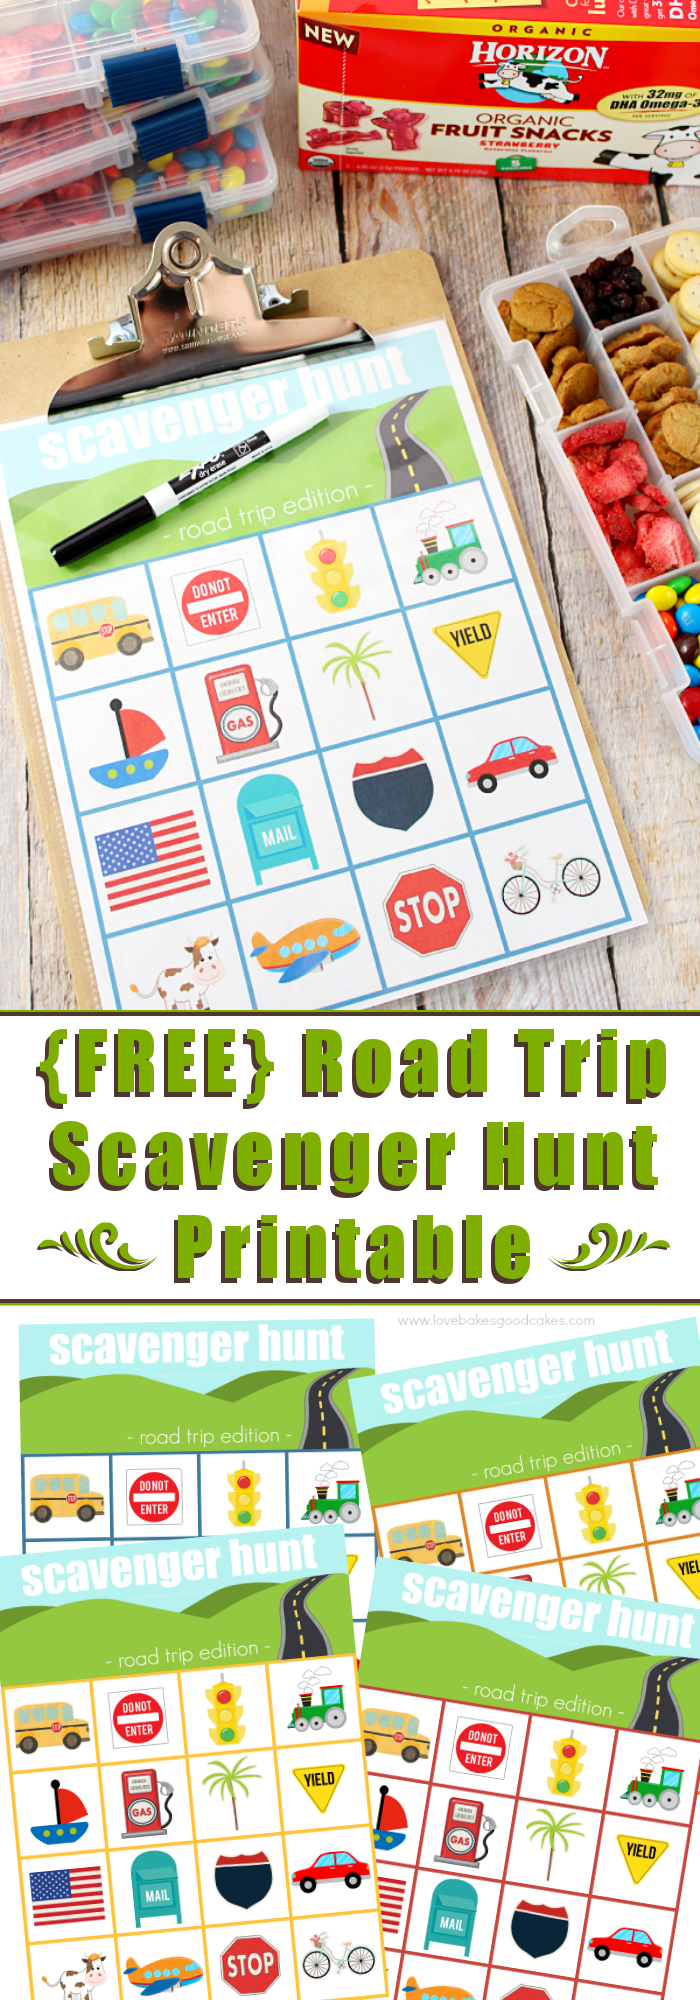 image about Road Trip Scavenger Hunt Printable identified as Street Vacation Scavenger Hunt Printable - Get pleasure from Bakes Great Cakes